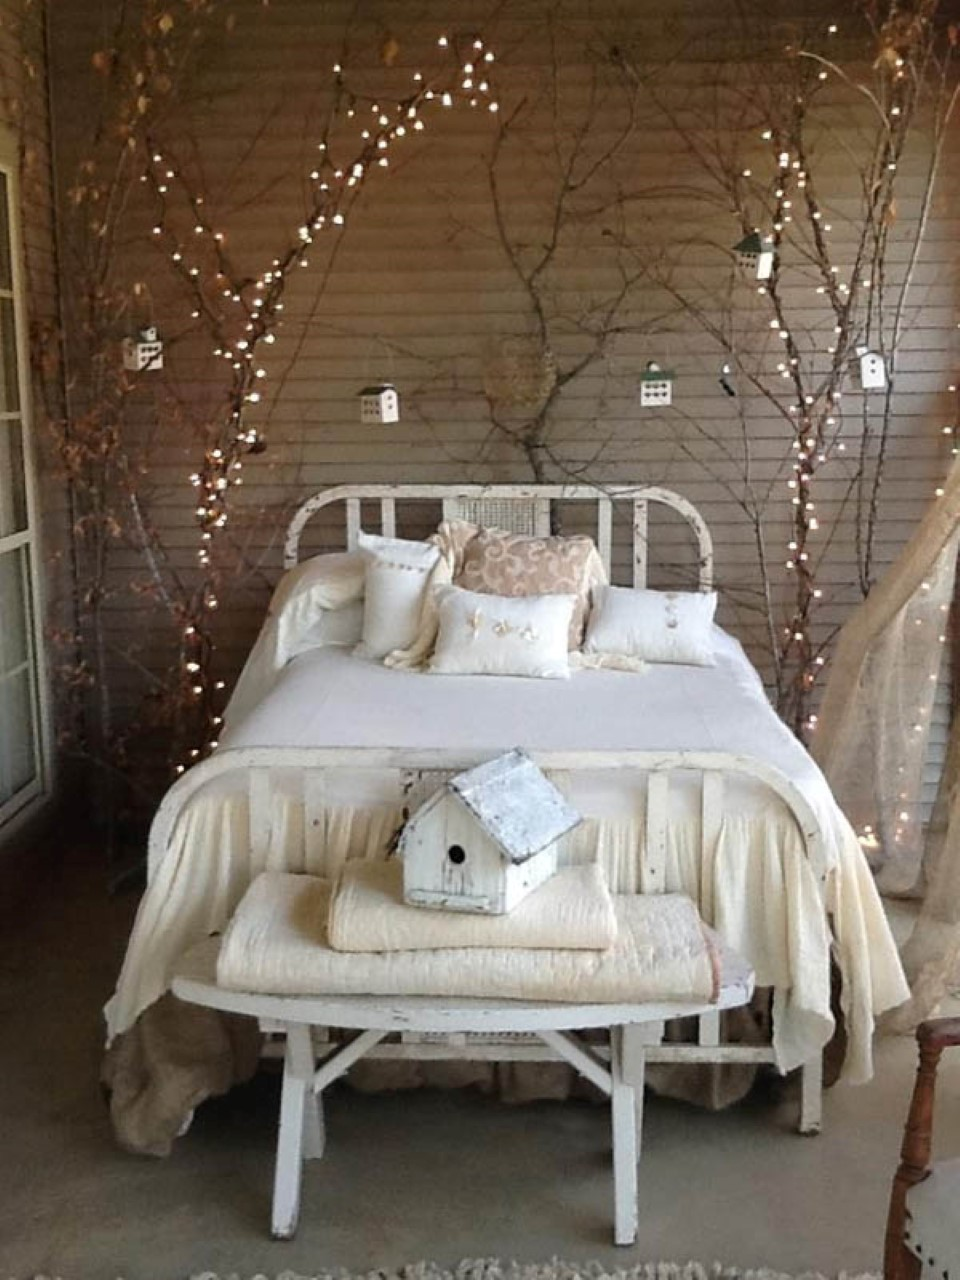 Cosy bedroom fairy lights - 27 Nature Lovers